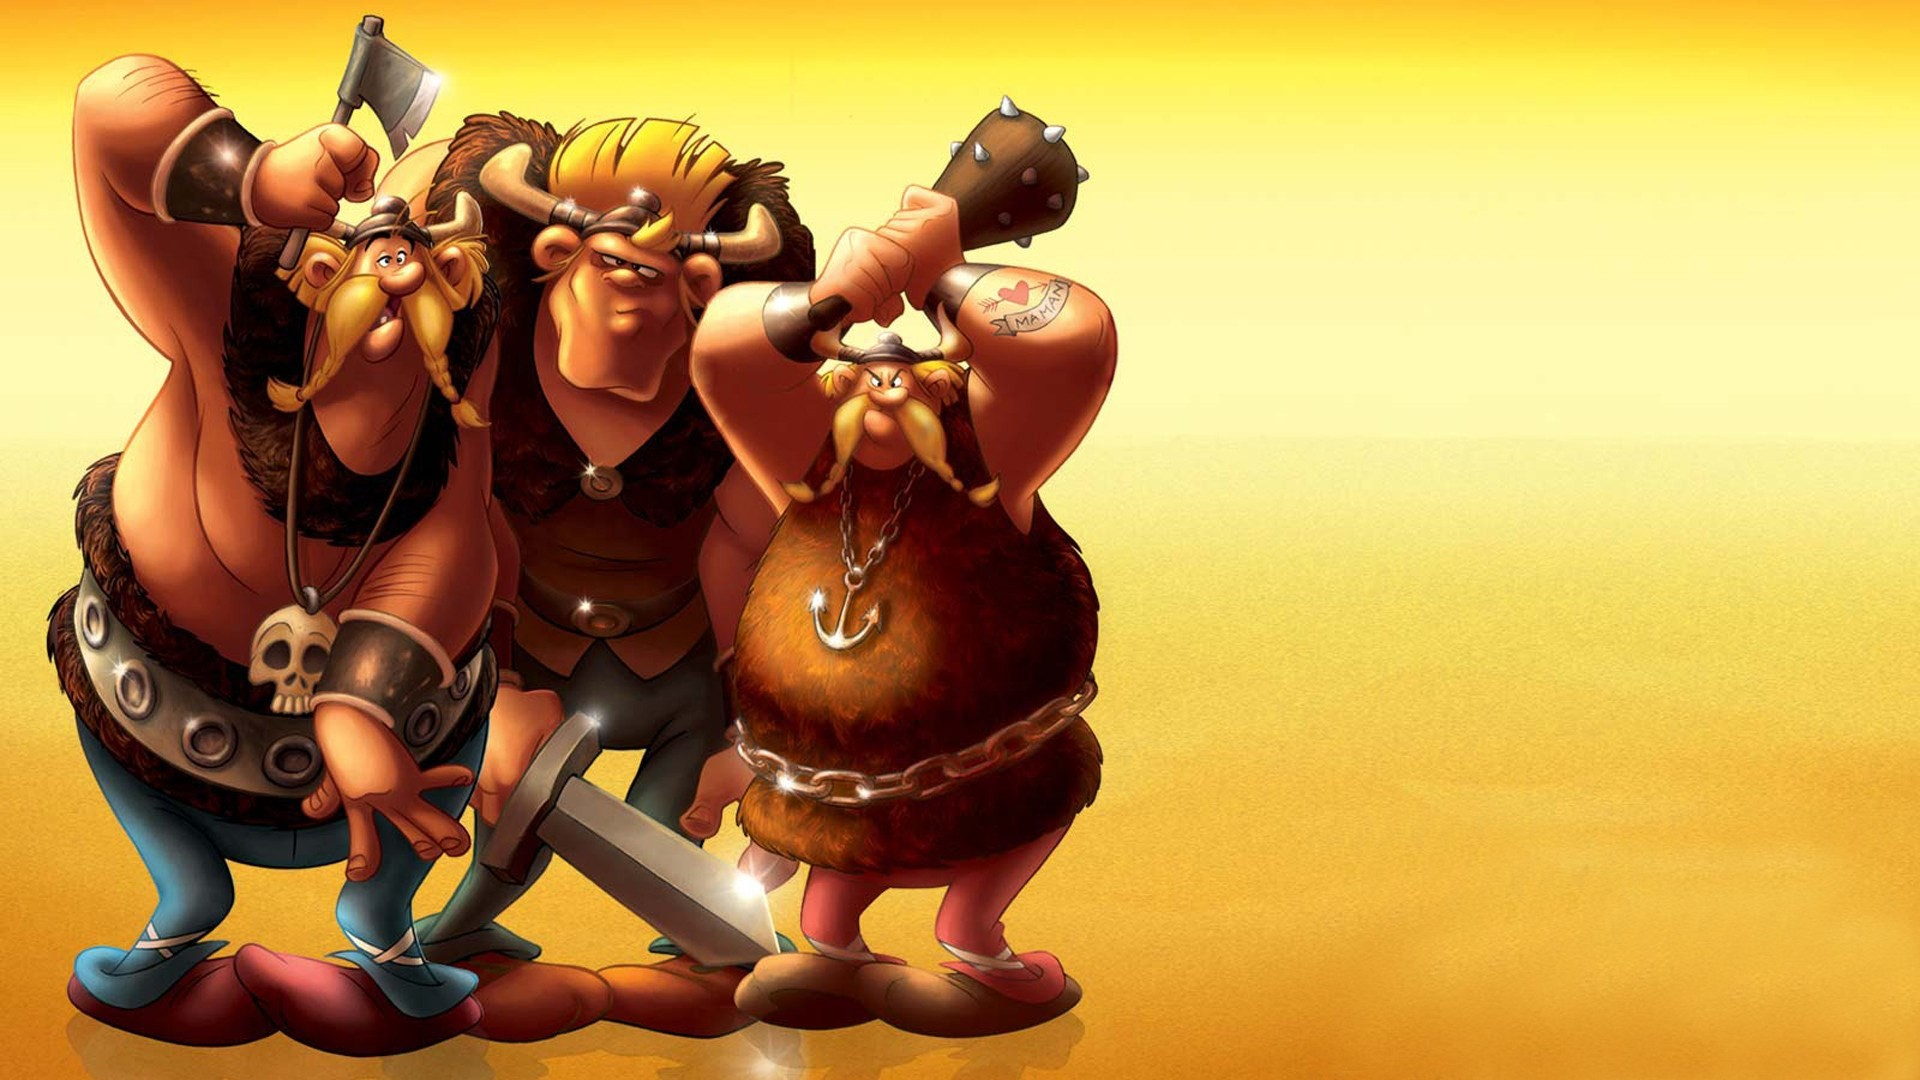 asterix wallpaper wallpapertag